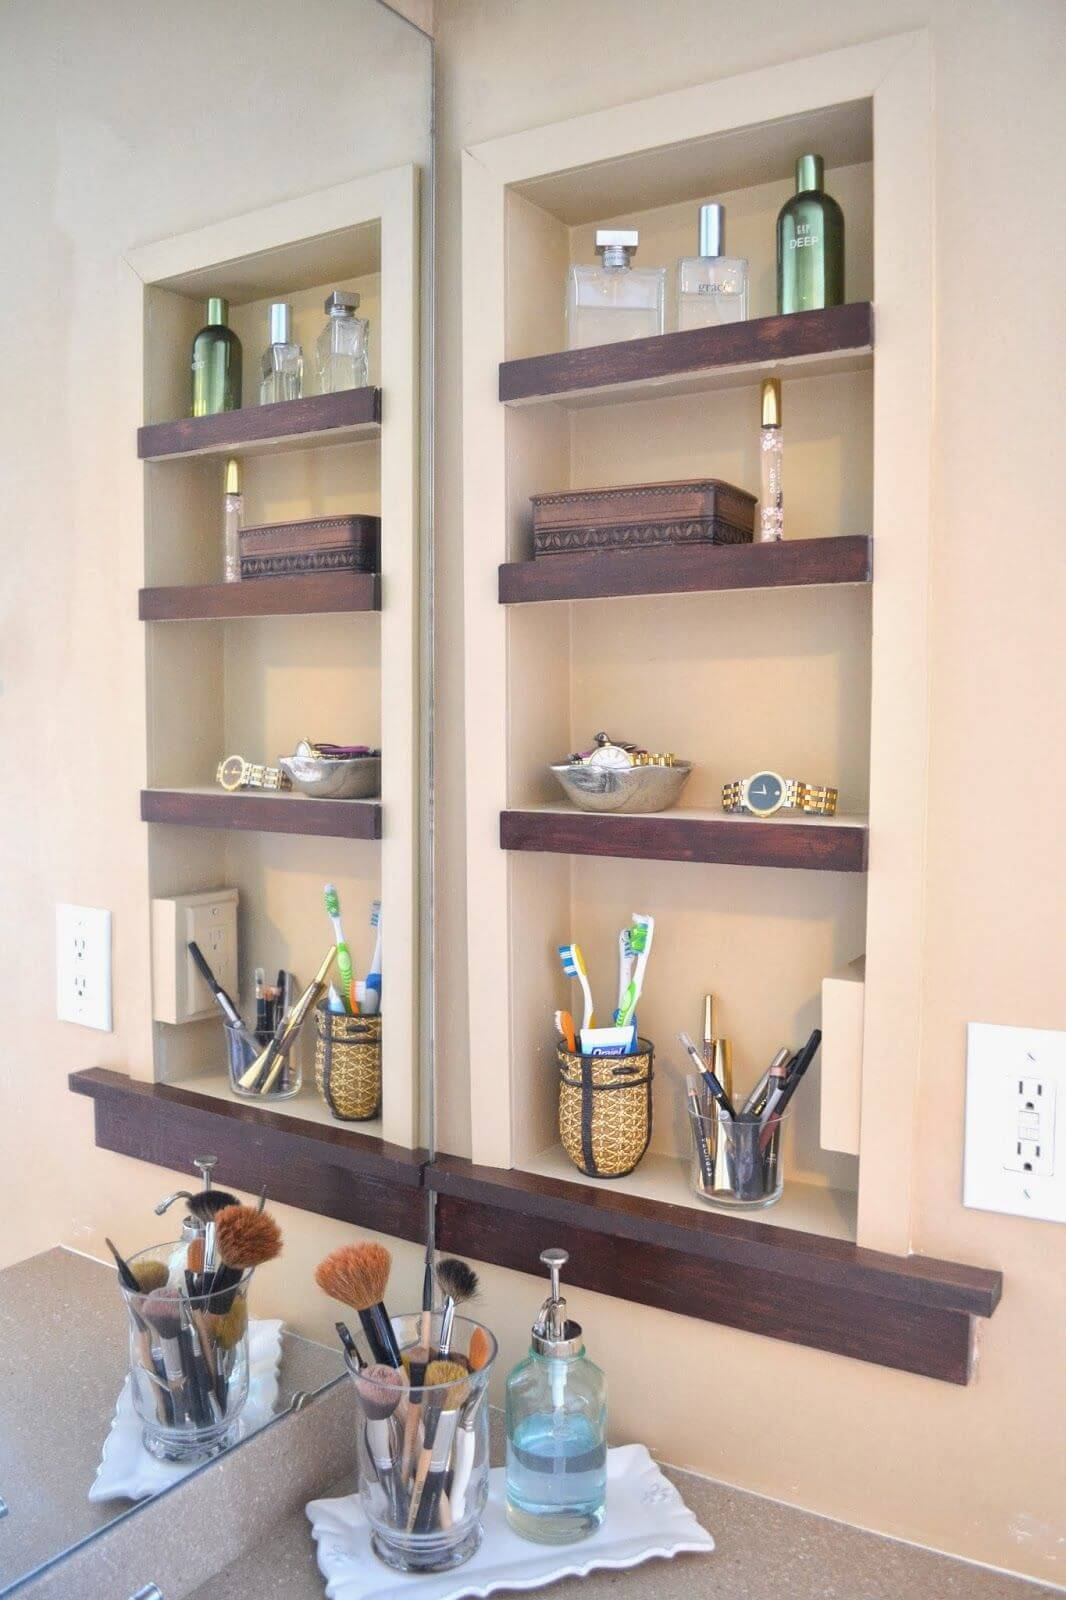 25 Best Built In Bathroom Shelf And Storage Ideas For 2019 regarding dimensions 1066 X 1600